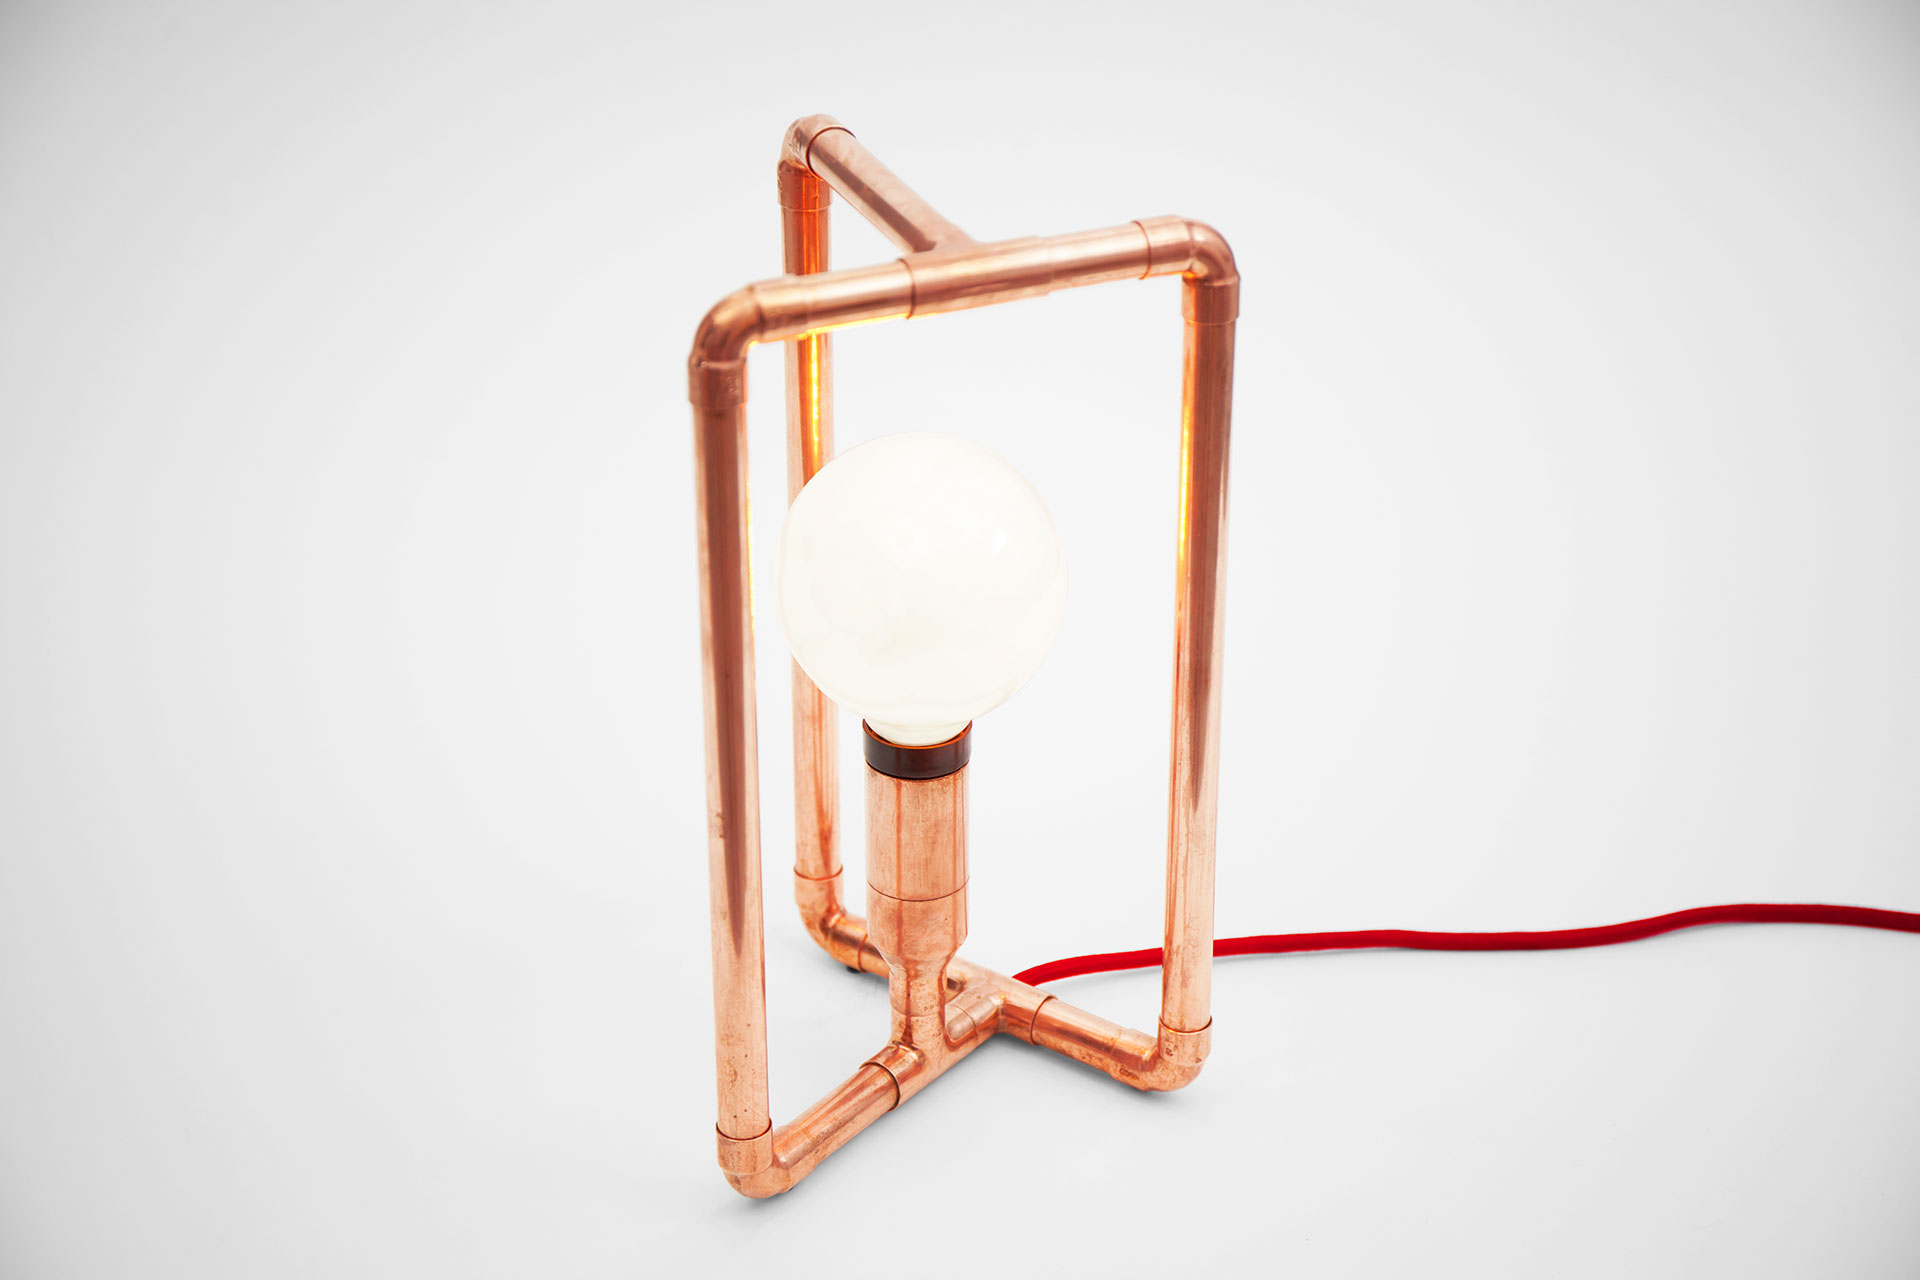 Geometric design desk lamp made of copper tubing with red braided cord inspired by 3D Möbius strip